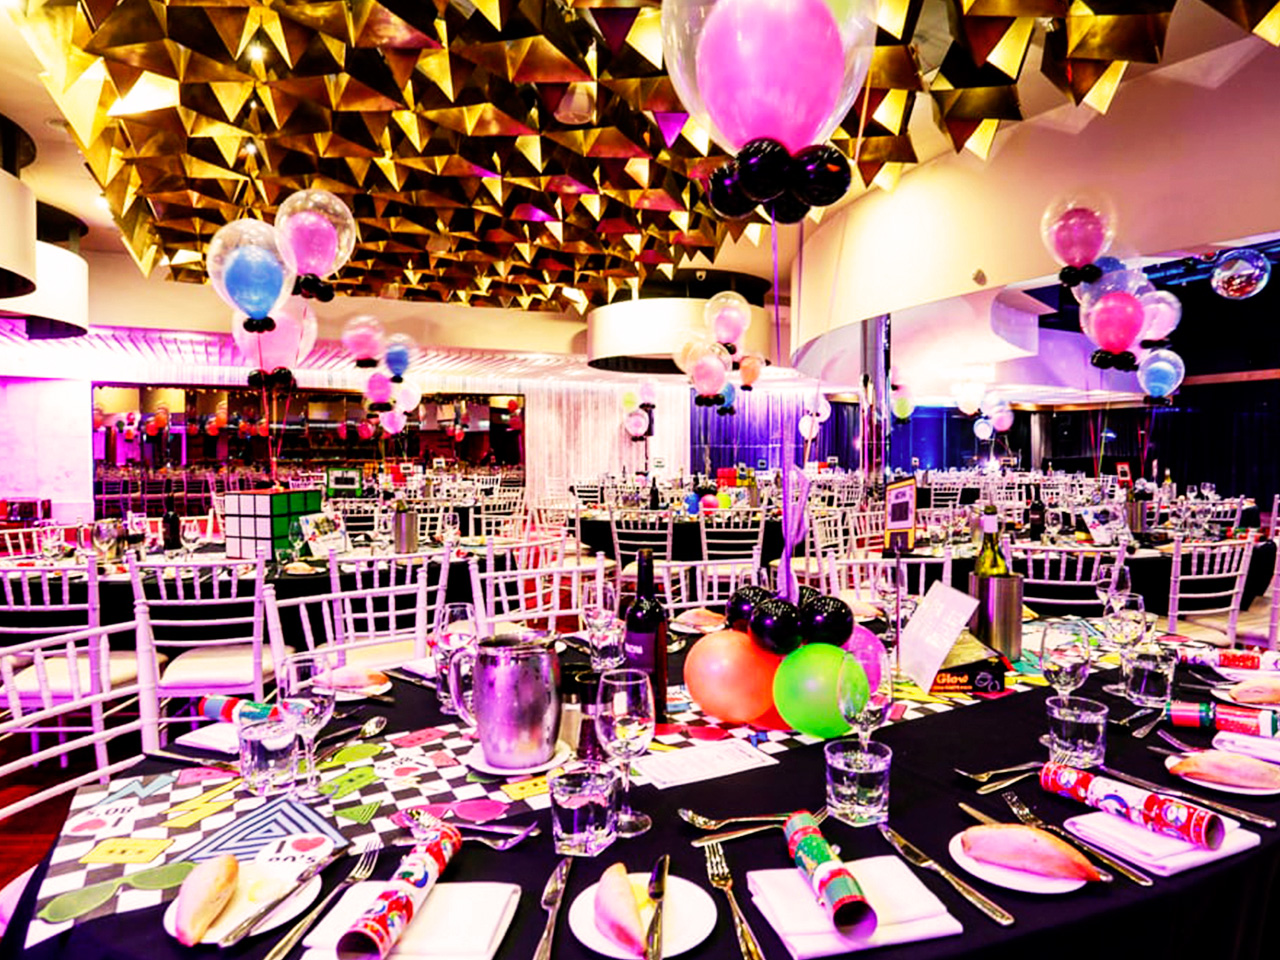 Black tables set for an event with balloons decorating each table